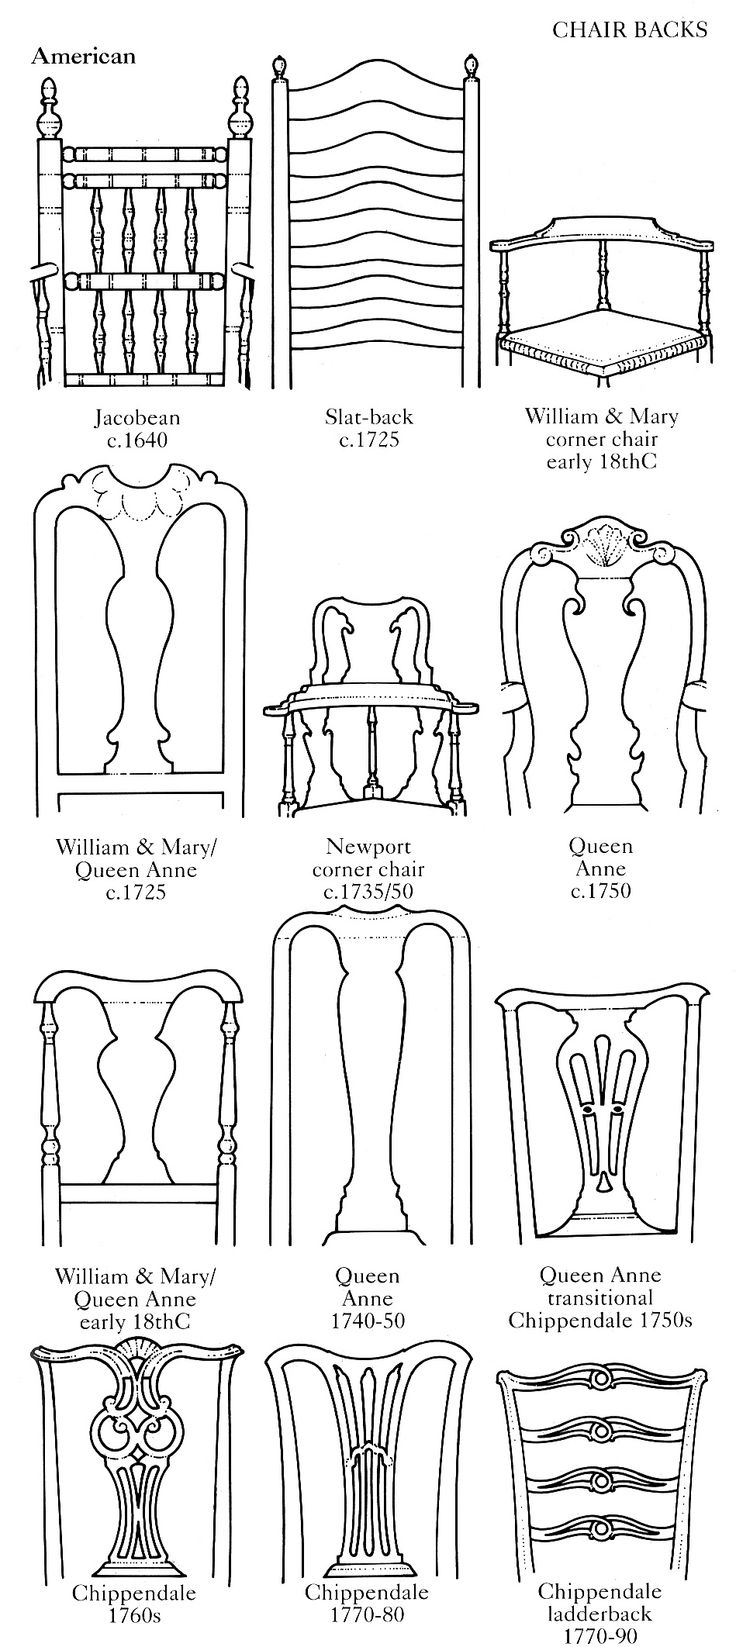 Antique chair parts - Diagram Of American Chair Backs 17th Century To Late 18th Century